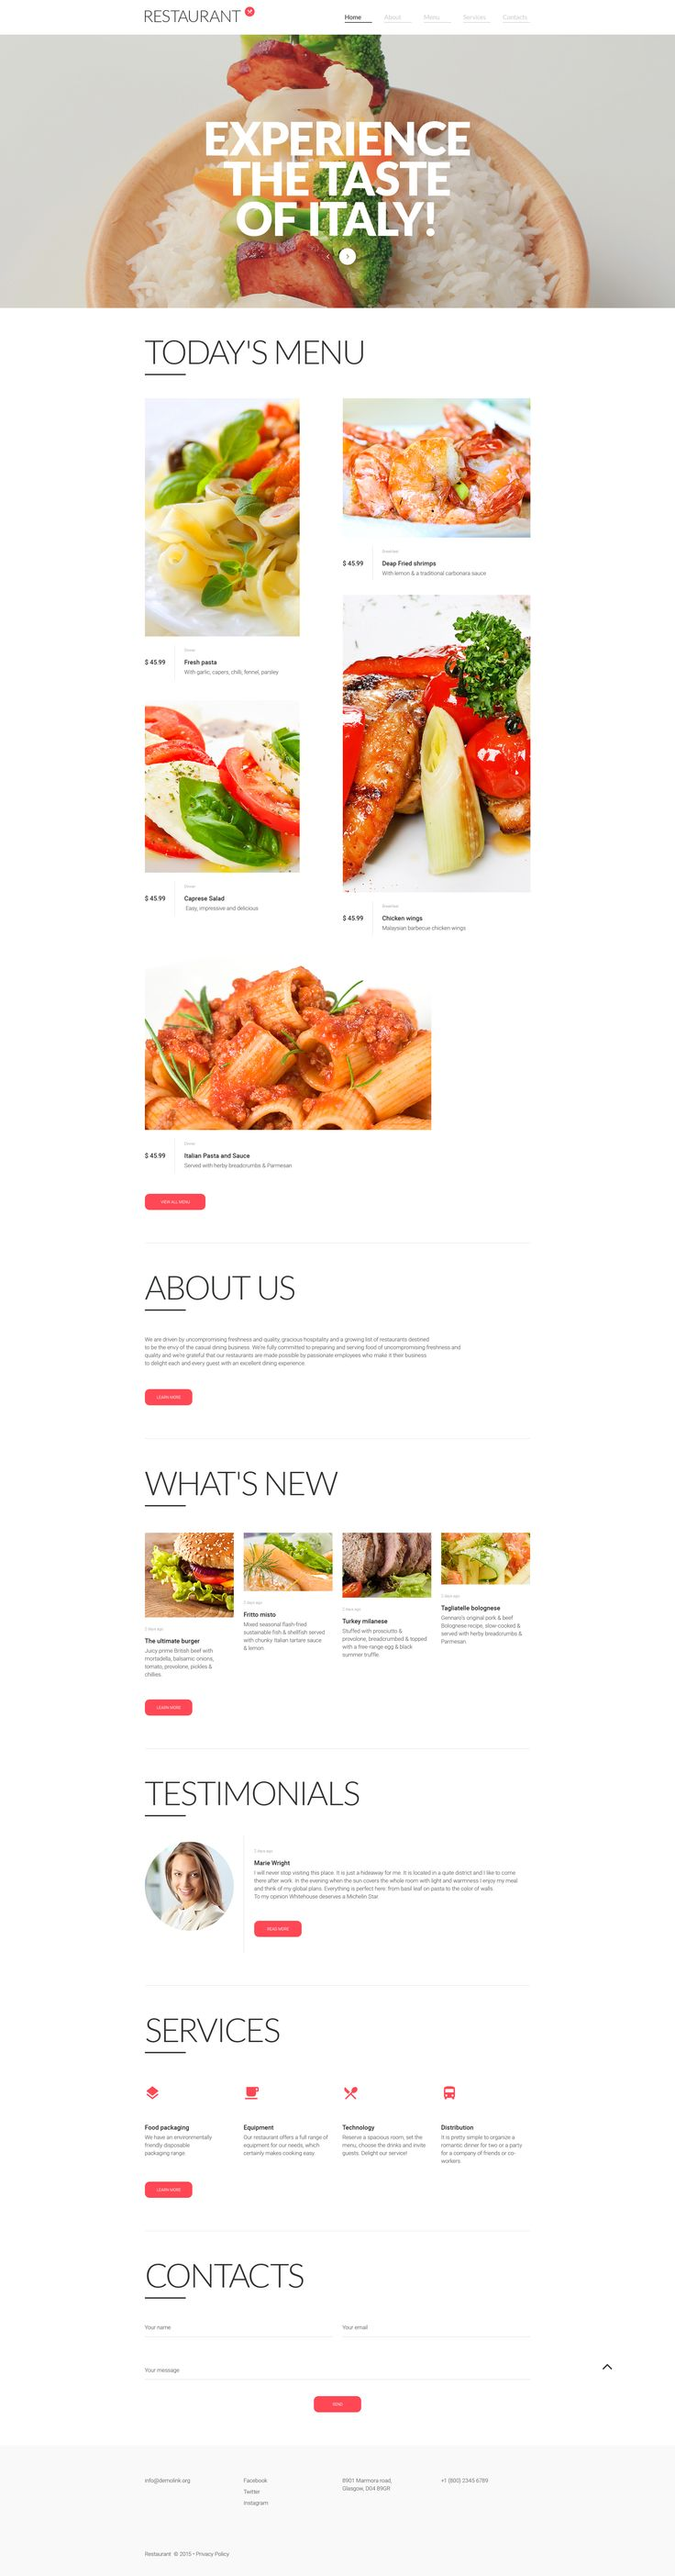 Cafe and Restaurant Responsive Website Template #58129